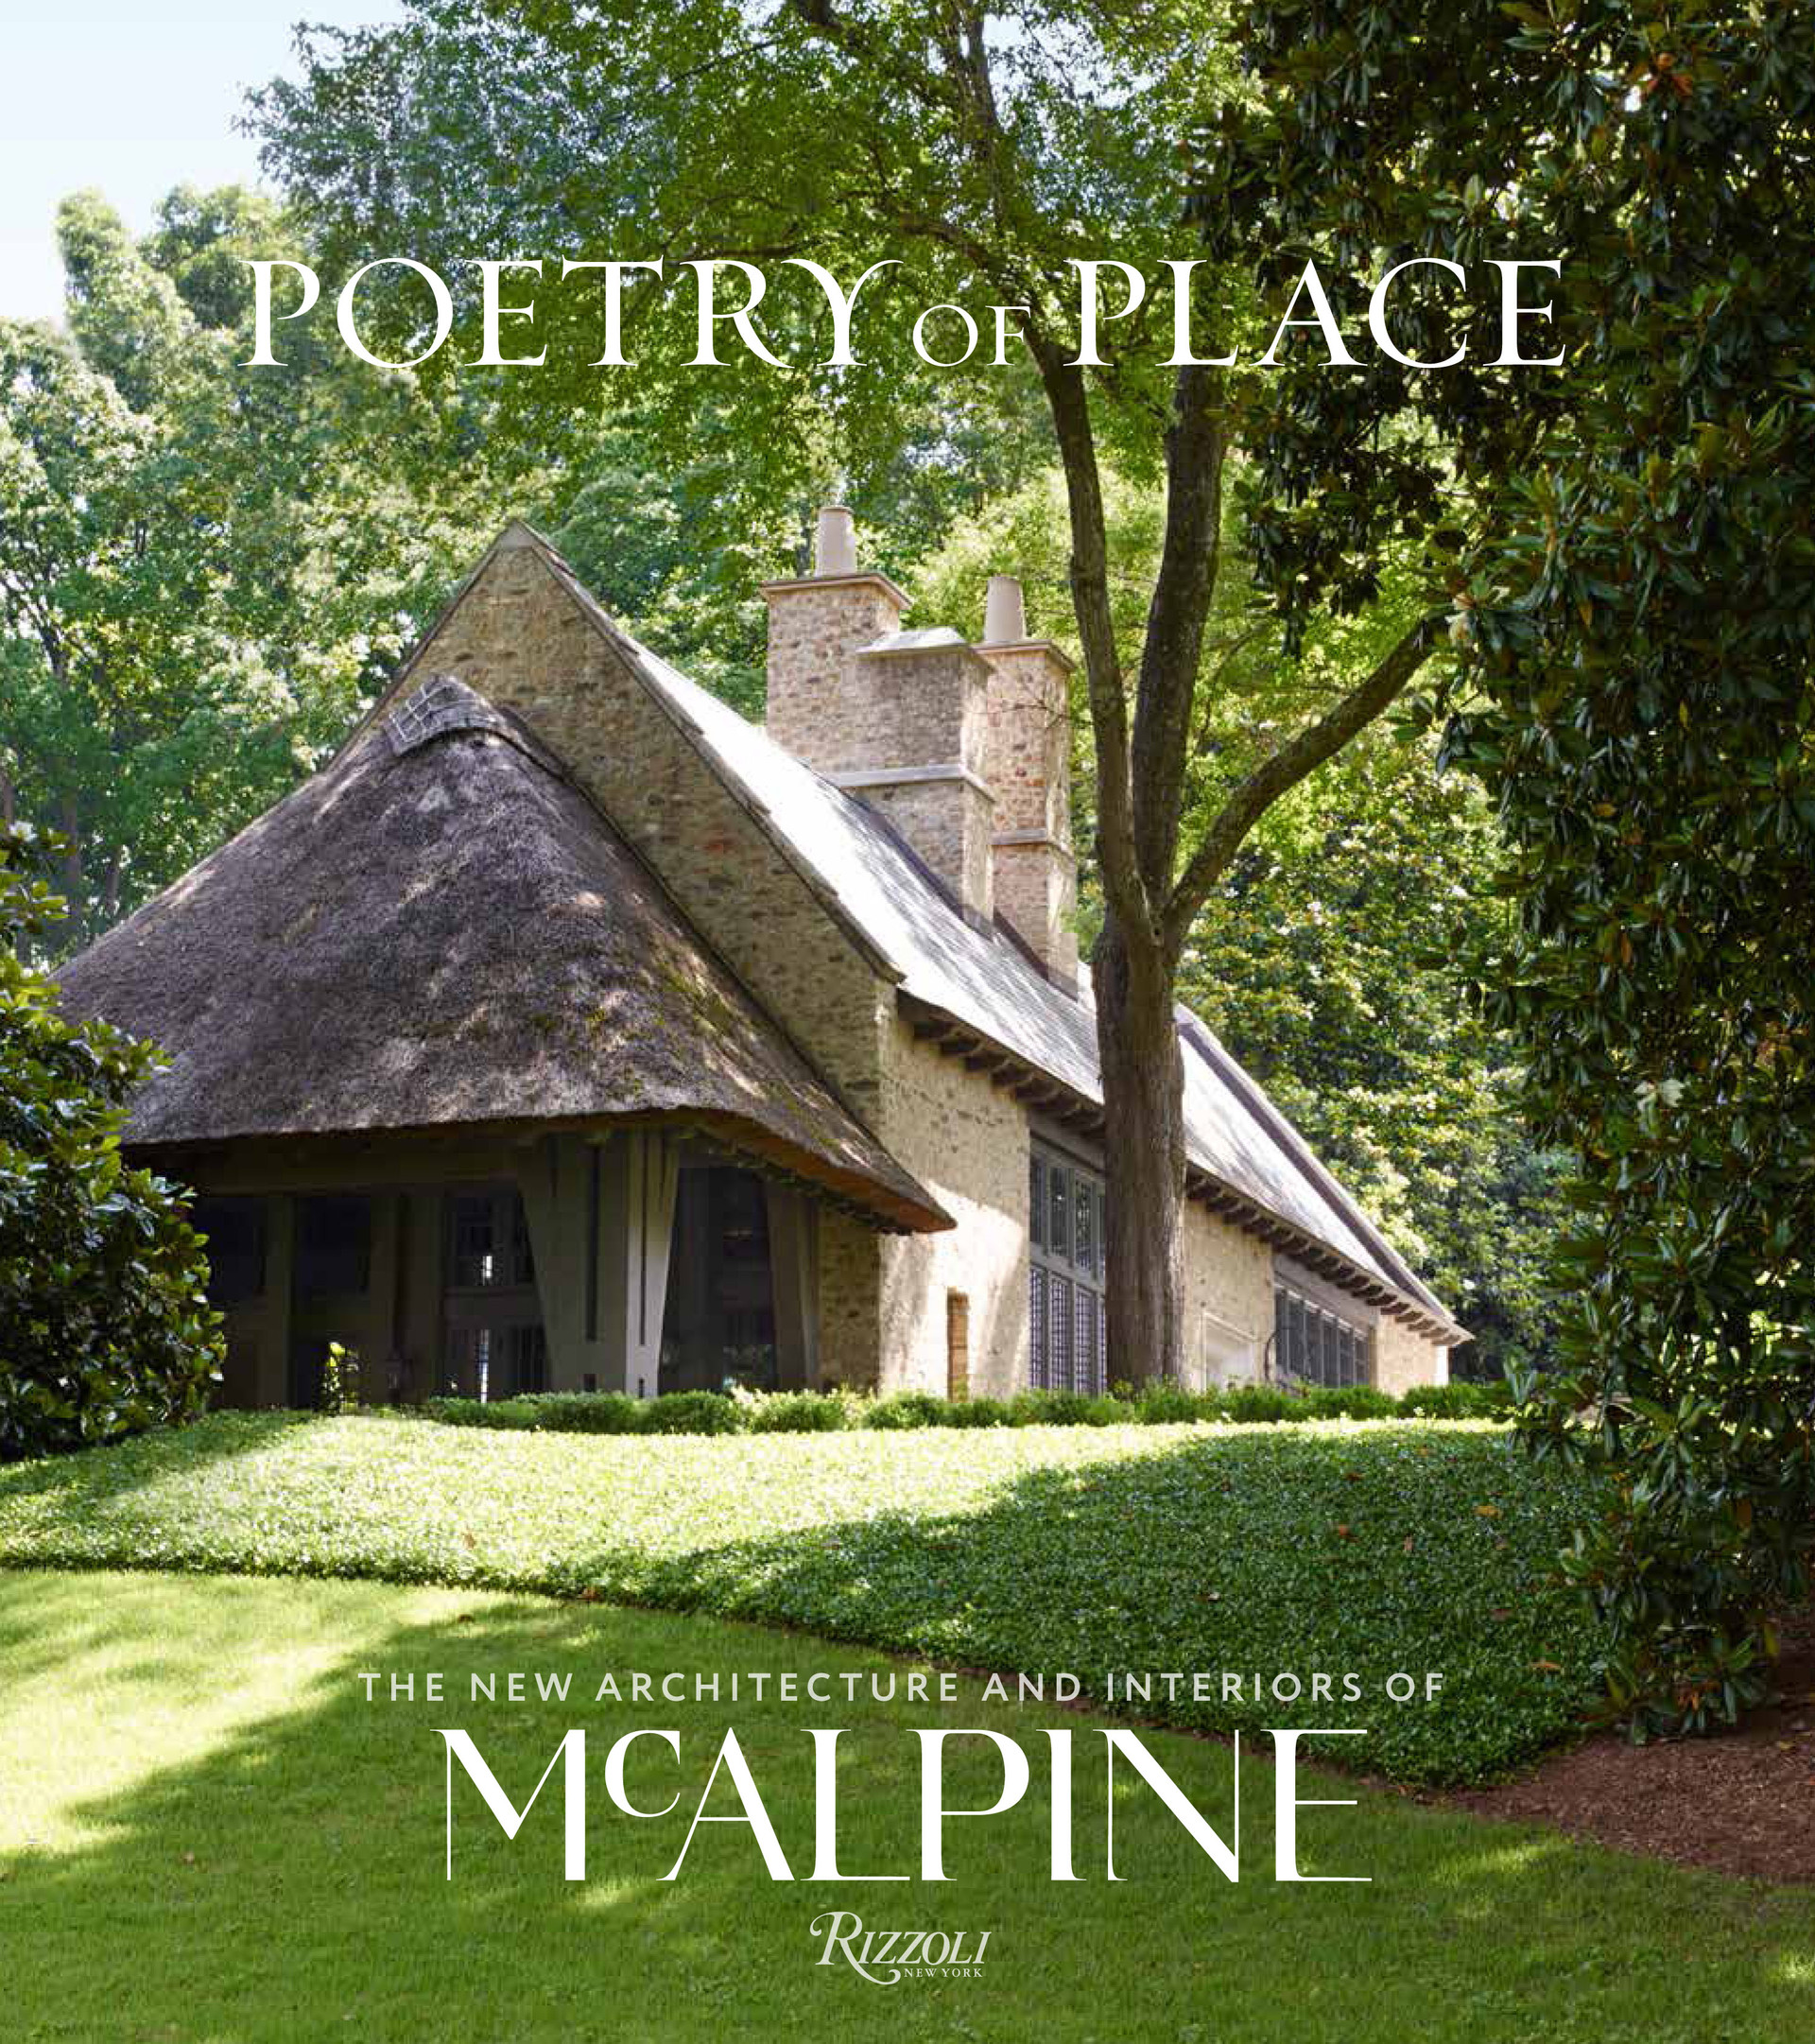 Bobby McAlpine Poetry of Placecover.jpg